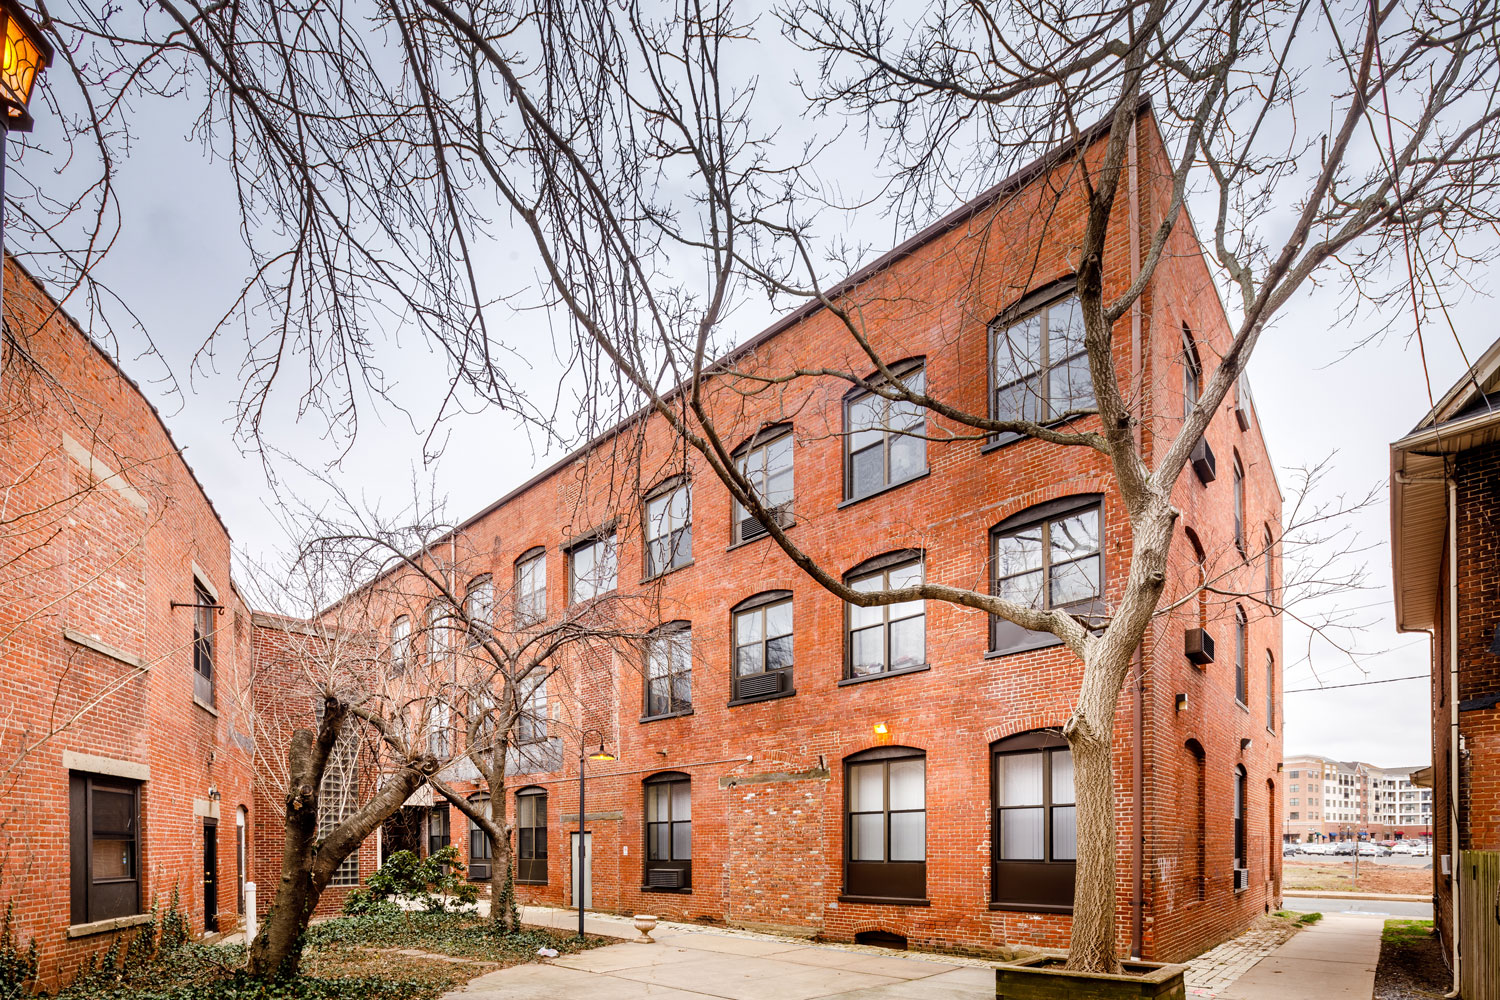 Studio, 1 and 2-Bedroom Apartments at The Warehouse Apartments in Somerville, New Jersey